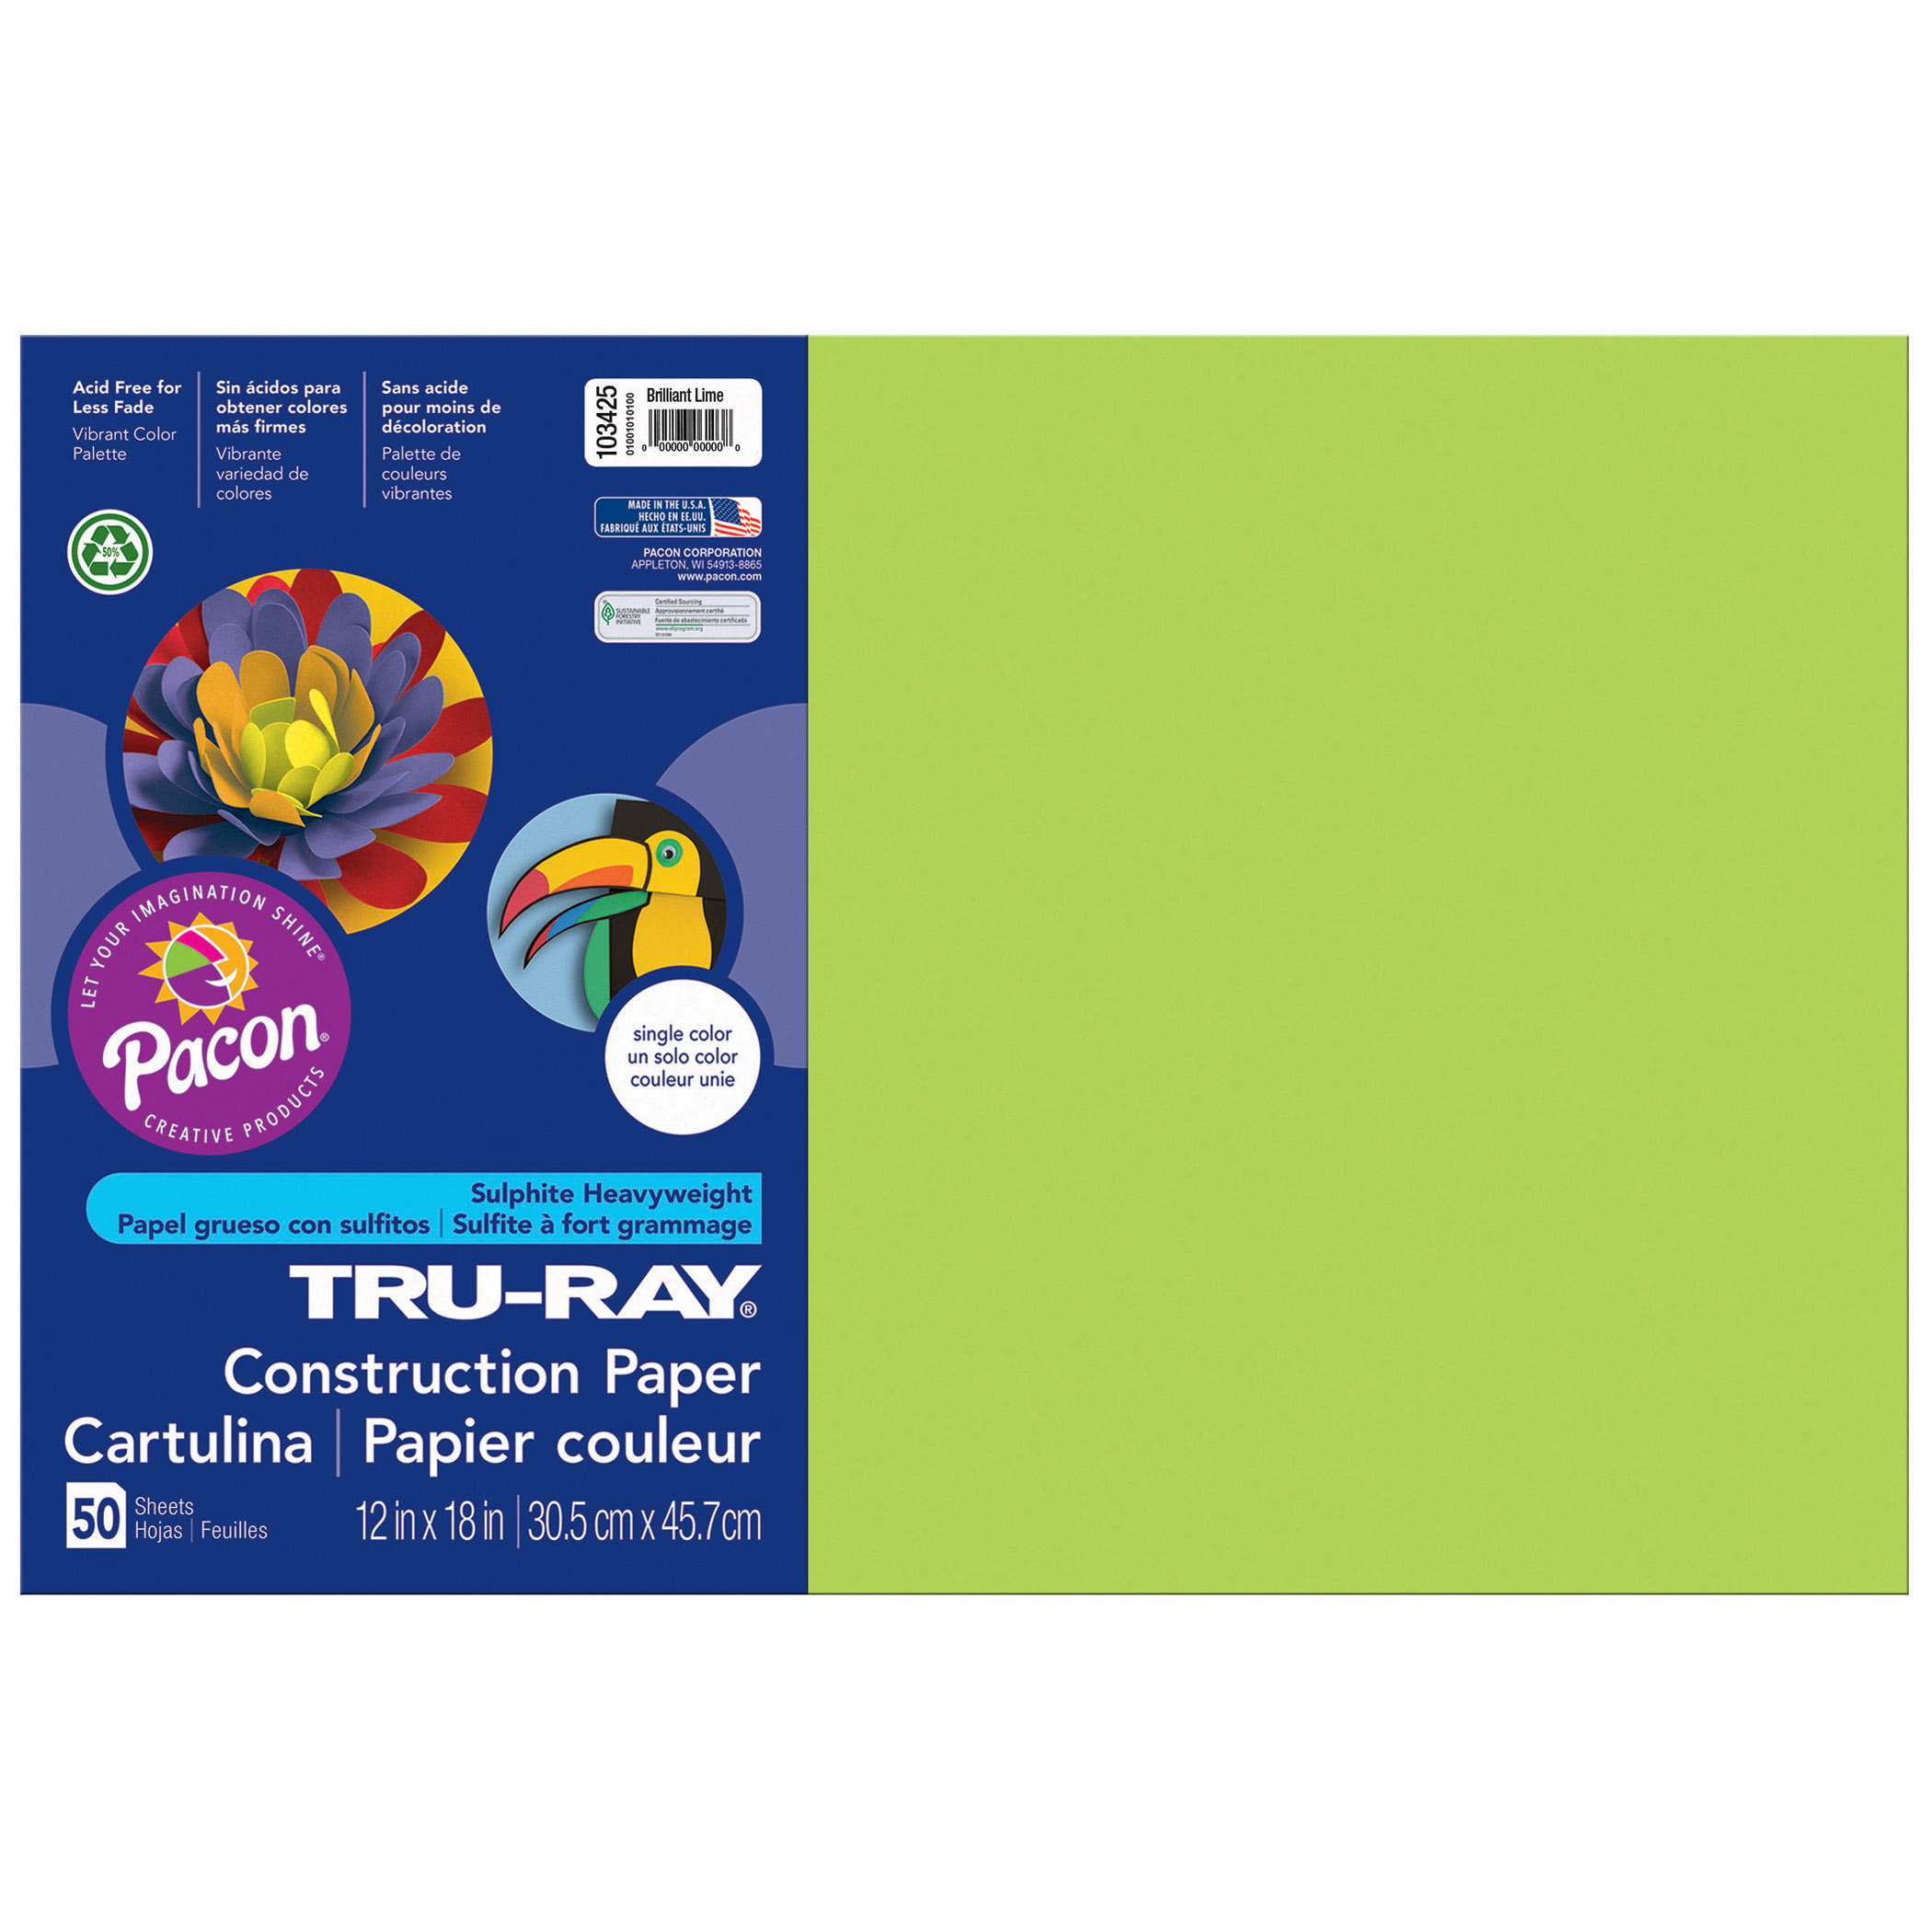 Pacon Tru-Ray Construction Paper Brilliant Lime 5 Packs 50 Sheets Per Pack 12 x 18